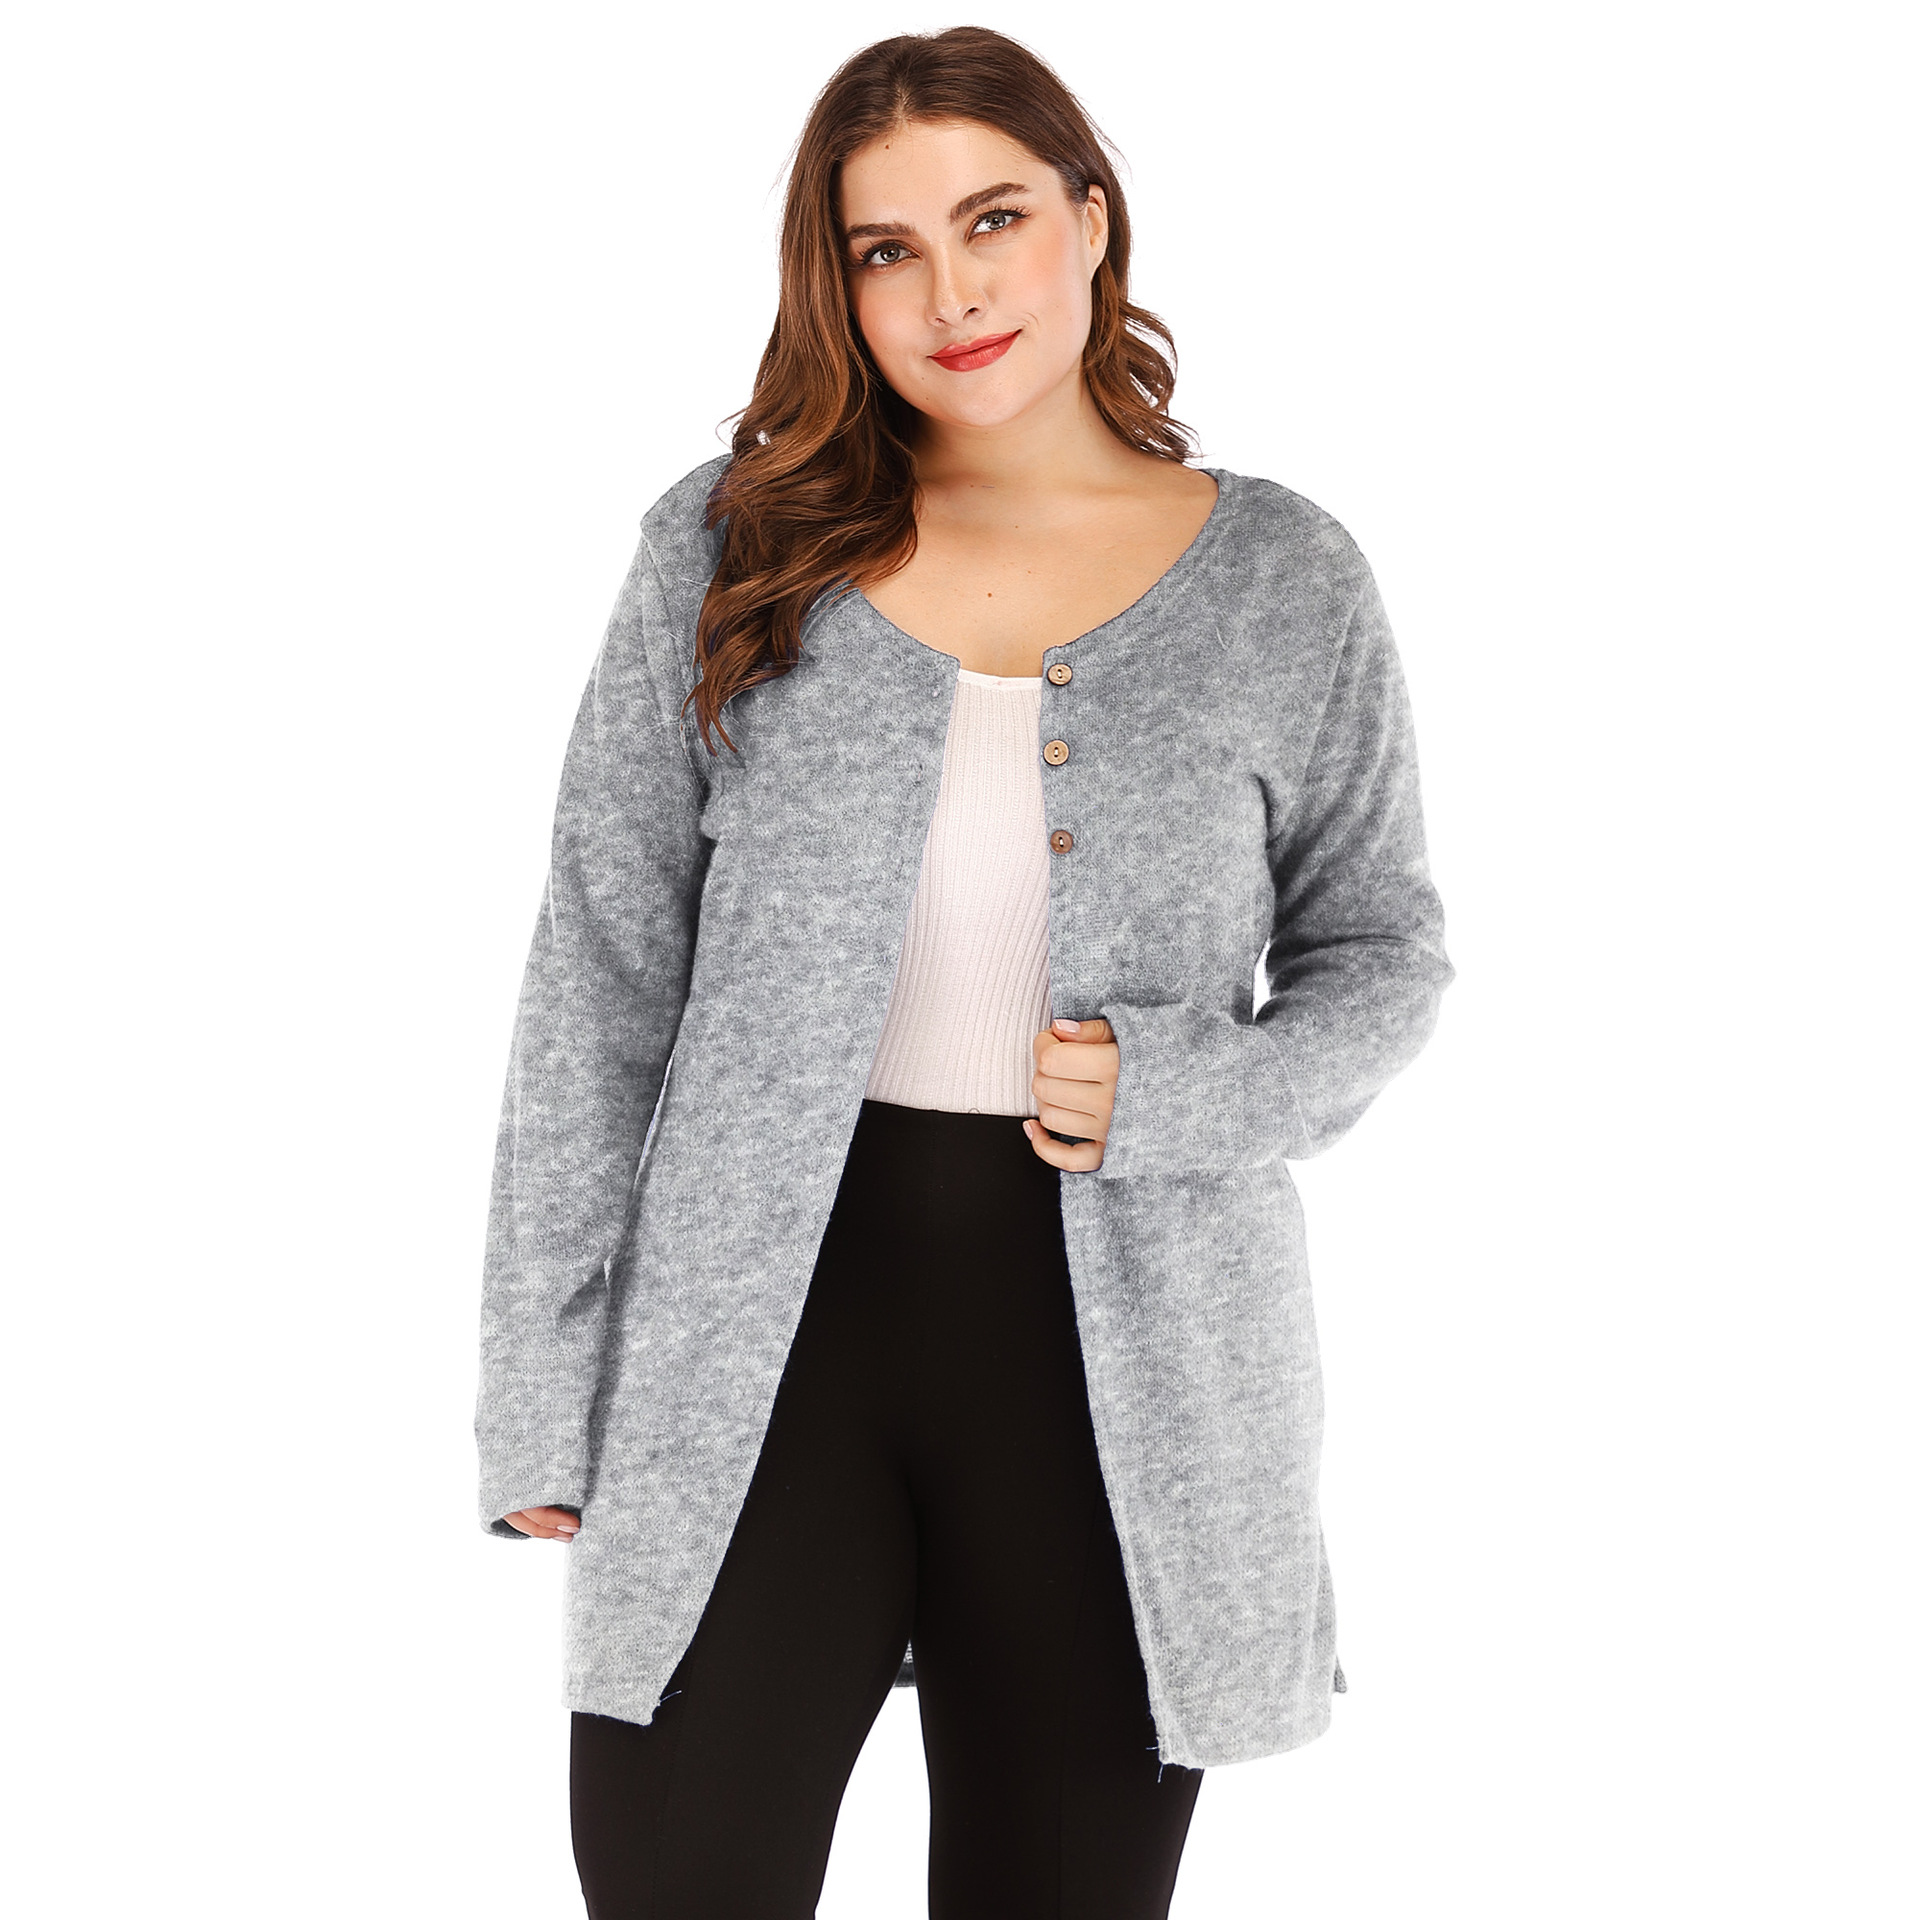 9c68b2430f5 Women Cardigan Coat Autumn Long Sleeve Button Casual Basic Plus Size Jacket  Gray on Luulla